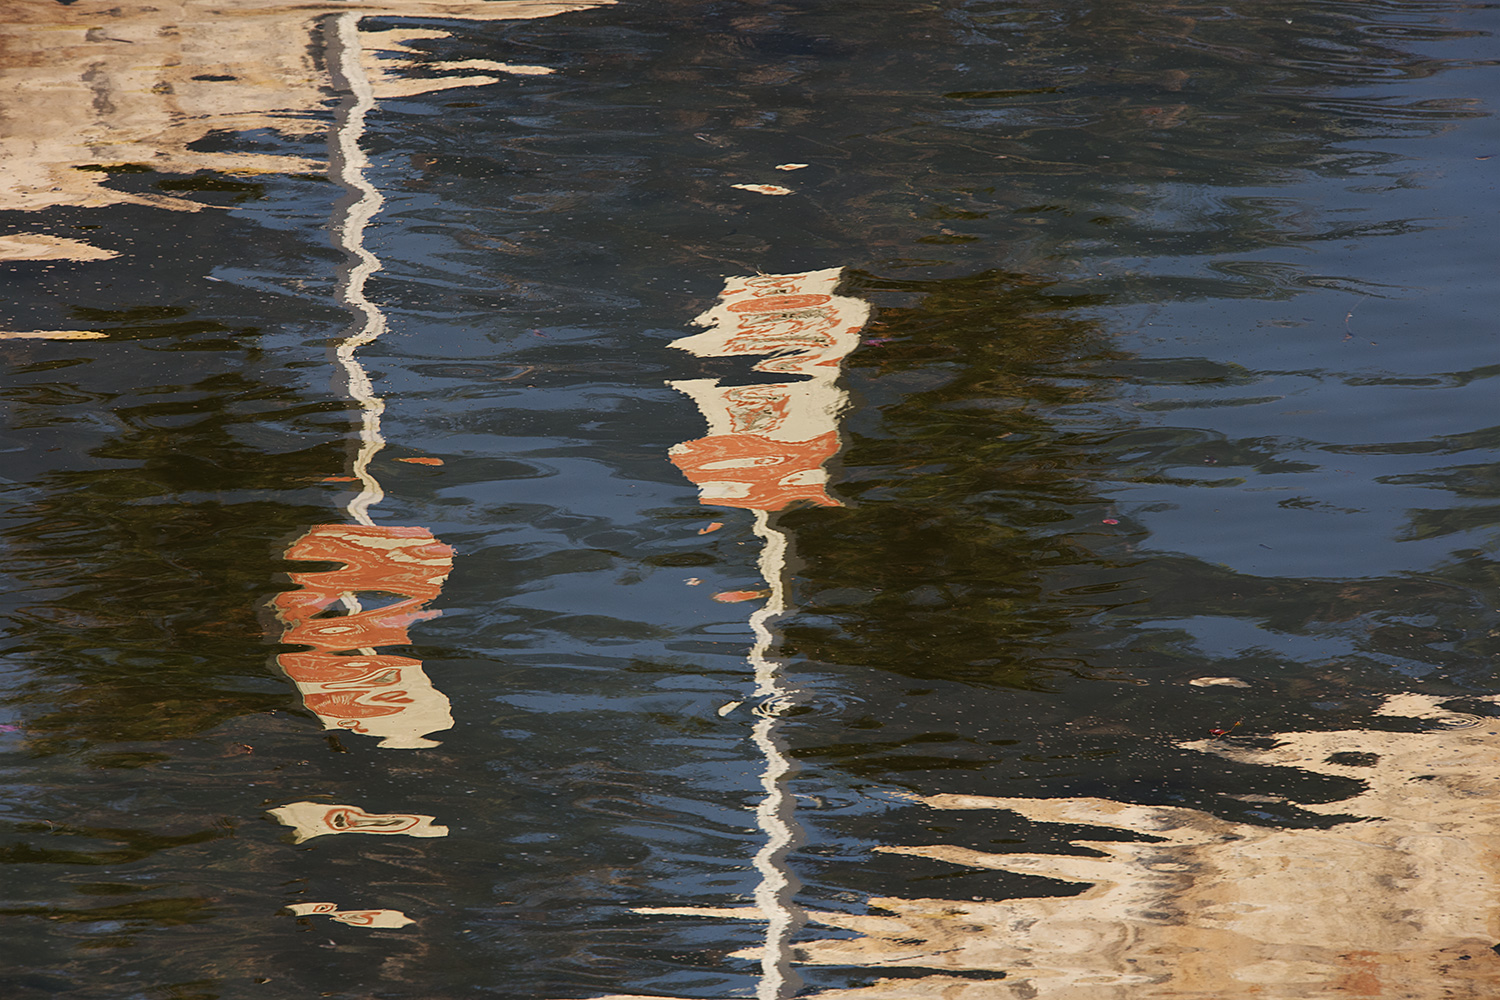 Opposite Reflections on Water